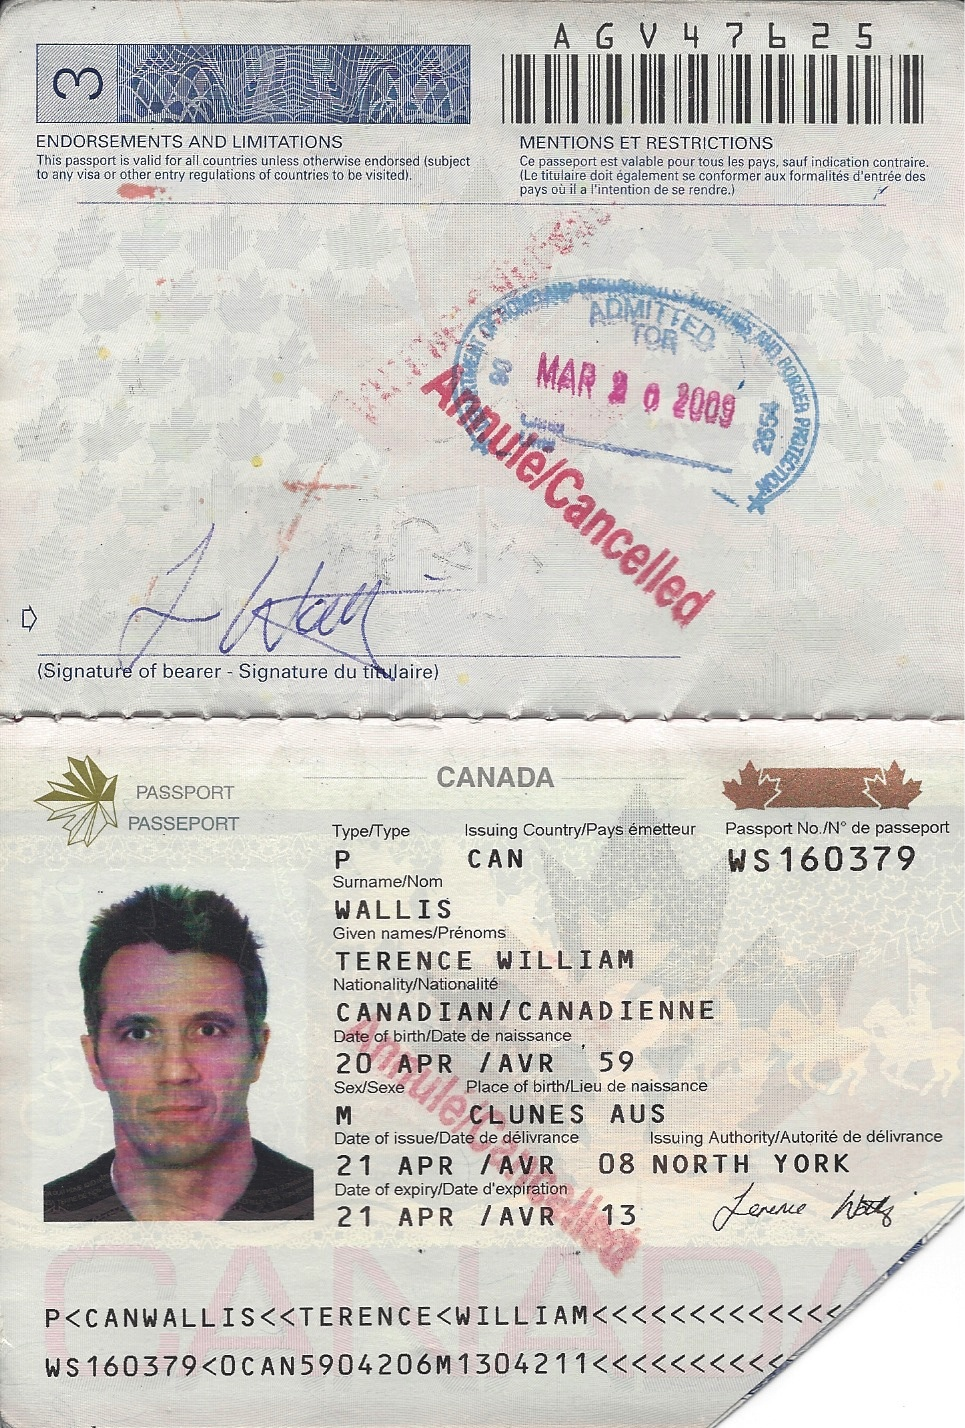 How Long Can My Passport Be To Travel